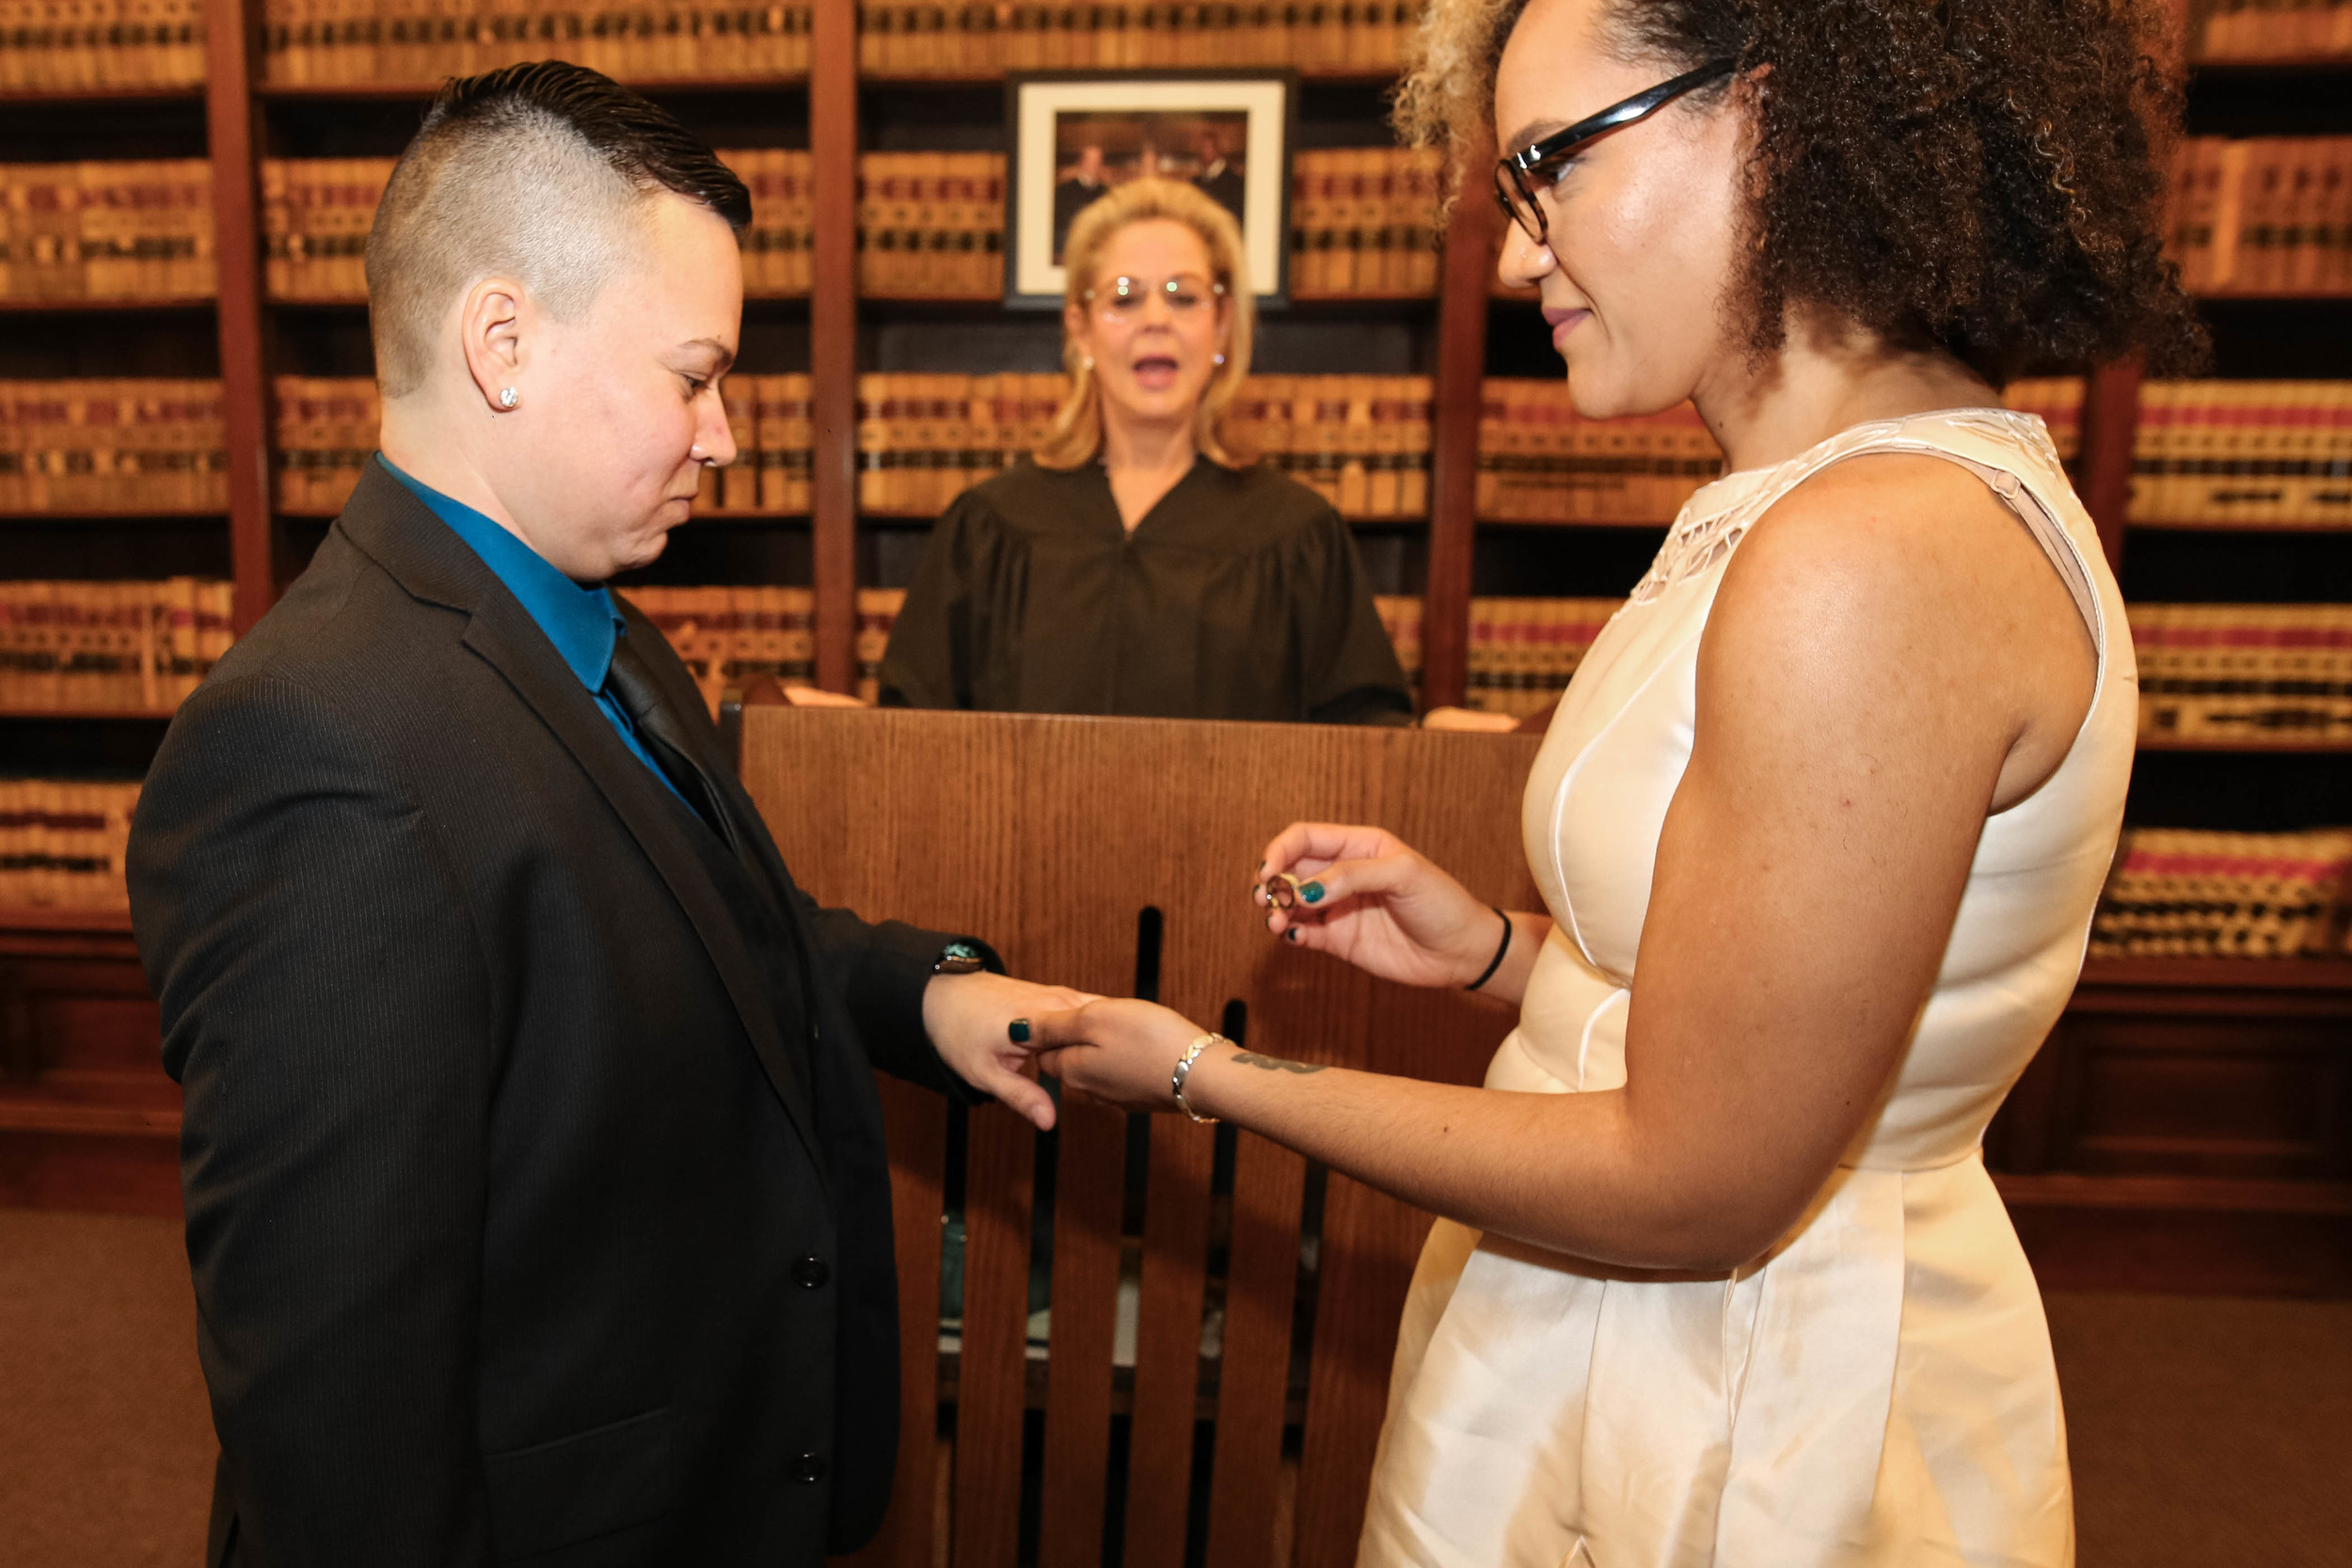 Lesbian Philadelphia City Hall Wedding